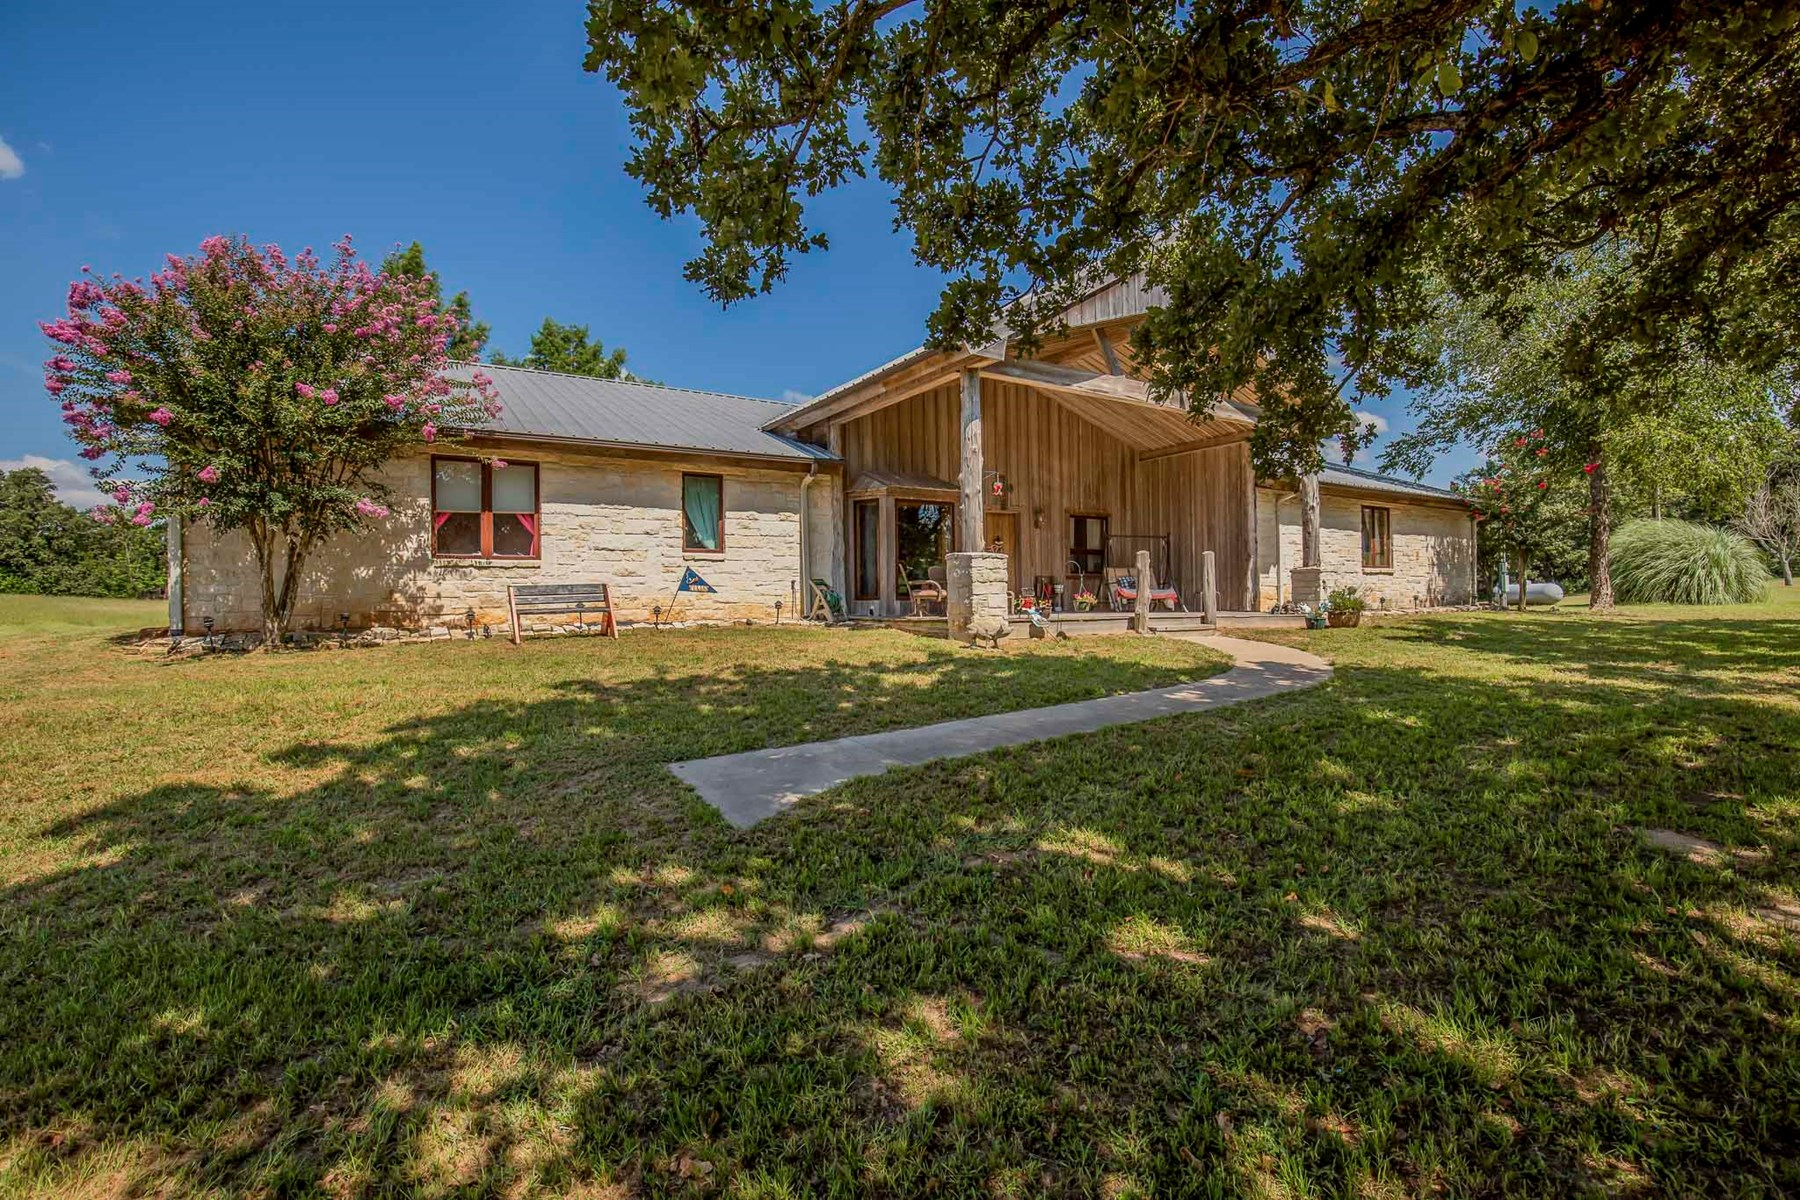 House and Ranch Land For Sale-Centerville, TX -Leon County,